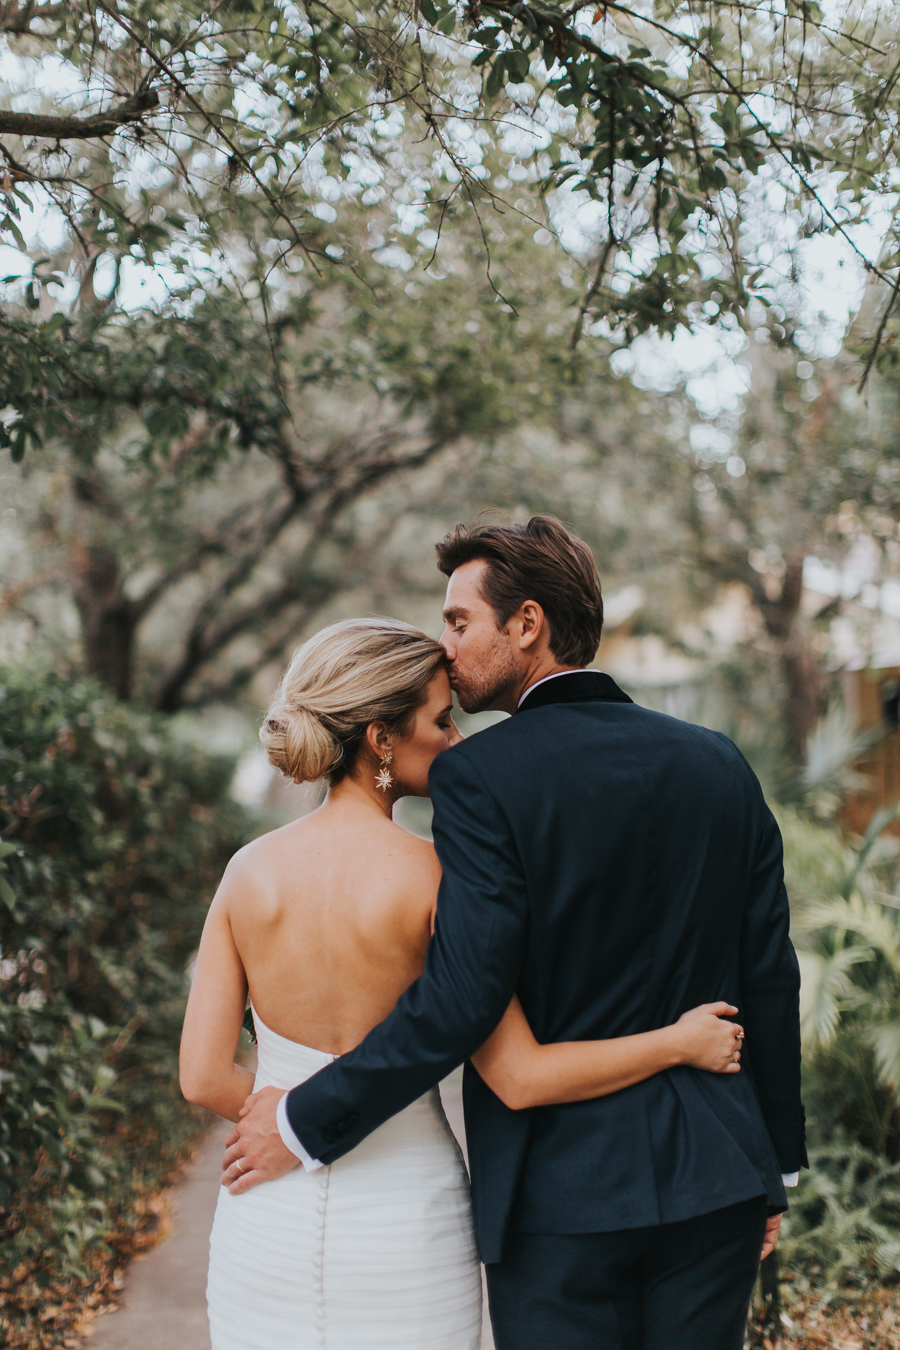 Loren and Alex Kuznetsov Gold and Burgundy wedding at Epicurean Tampa Royal Fall Wedding in Tampa Florida Inside Weddings MD Events Tampa-122.jpg